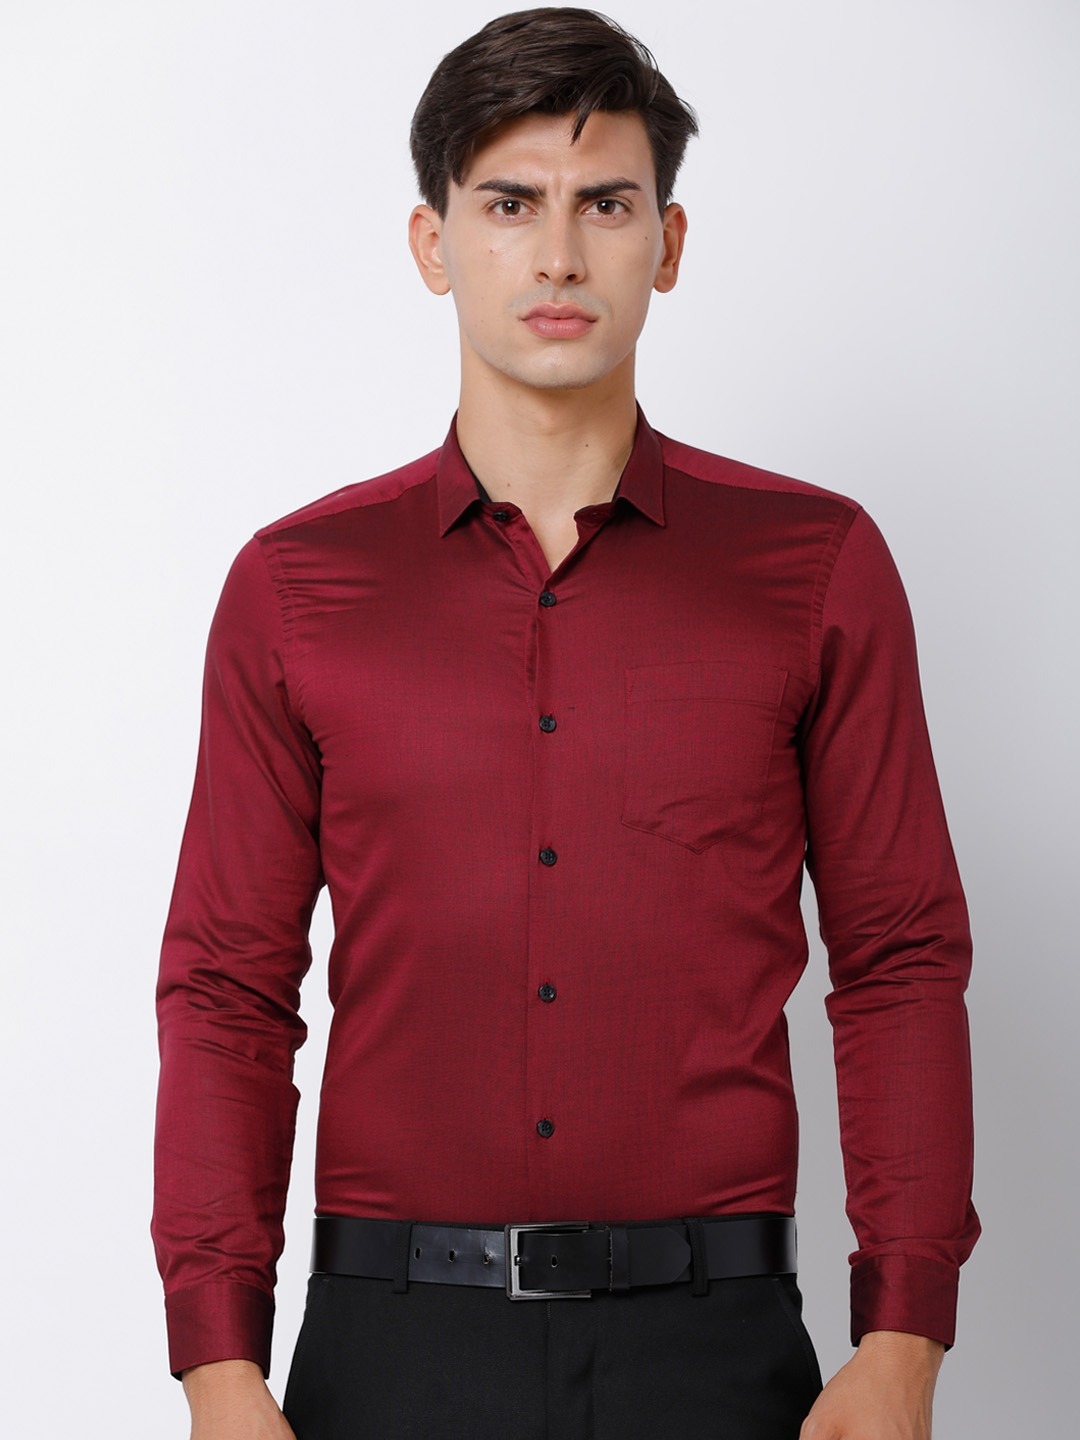 b0e5f8bce3ae Buy Black Coffee Men Maroon Slim Fit Solid Formal Shirt - Shirts for ...